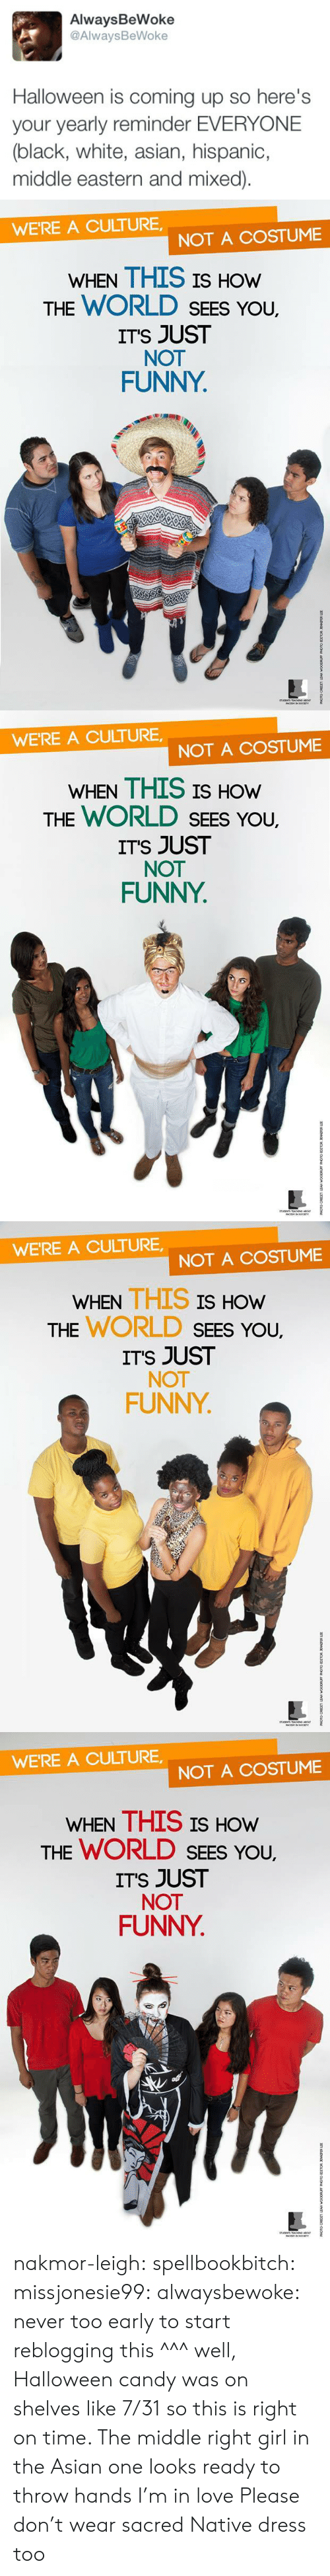 Mixed: AlwaysBeWoke  @AlwaysBeWoke  Halloween is coming up so here's  your yearly reminder EVERYONE  (black, white, asian, hispanic,  middle eastern and mixed)   WE'RE A CULTURE  NOT A COSTUME  WHEN THIS IS HOW  THE WORLD SEES YoU.  ITS JUST  NOT  FUNNY   WE'RE A CULTURE  NOT A COSTUME  WHEN THIS IS HOW  THE WORLD SEES YoU.  ITS JUST  NOT  FUNNY   WE'RE A CULTURE,  NOT A COSTUME  WHEN THIS IS  HOW  THE WORLD SEEs You,  ITS JUST  NOT  FUNNY   WE'RE A CULTURE  NOT A COSTUME  WHEN THIS IS HOw  THE WORLD SEES You,  ITS JUST  NOT  FUNNY nakmor-leigh: spellbookbitch:  missjonesie99:  alwaysbewoke:  never too early to start reblogging this  ^^^ well, Halloween candy was on shelves like 7/31 so this is right on time.    The middle right girl in the Asian one looks ready to throw hands I'm in love   Please don't wear sacred Native dress too